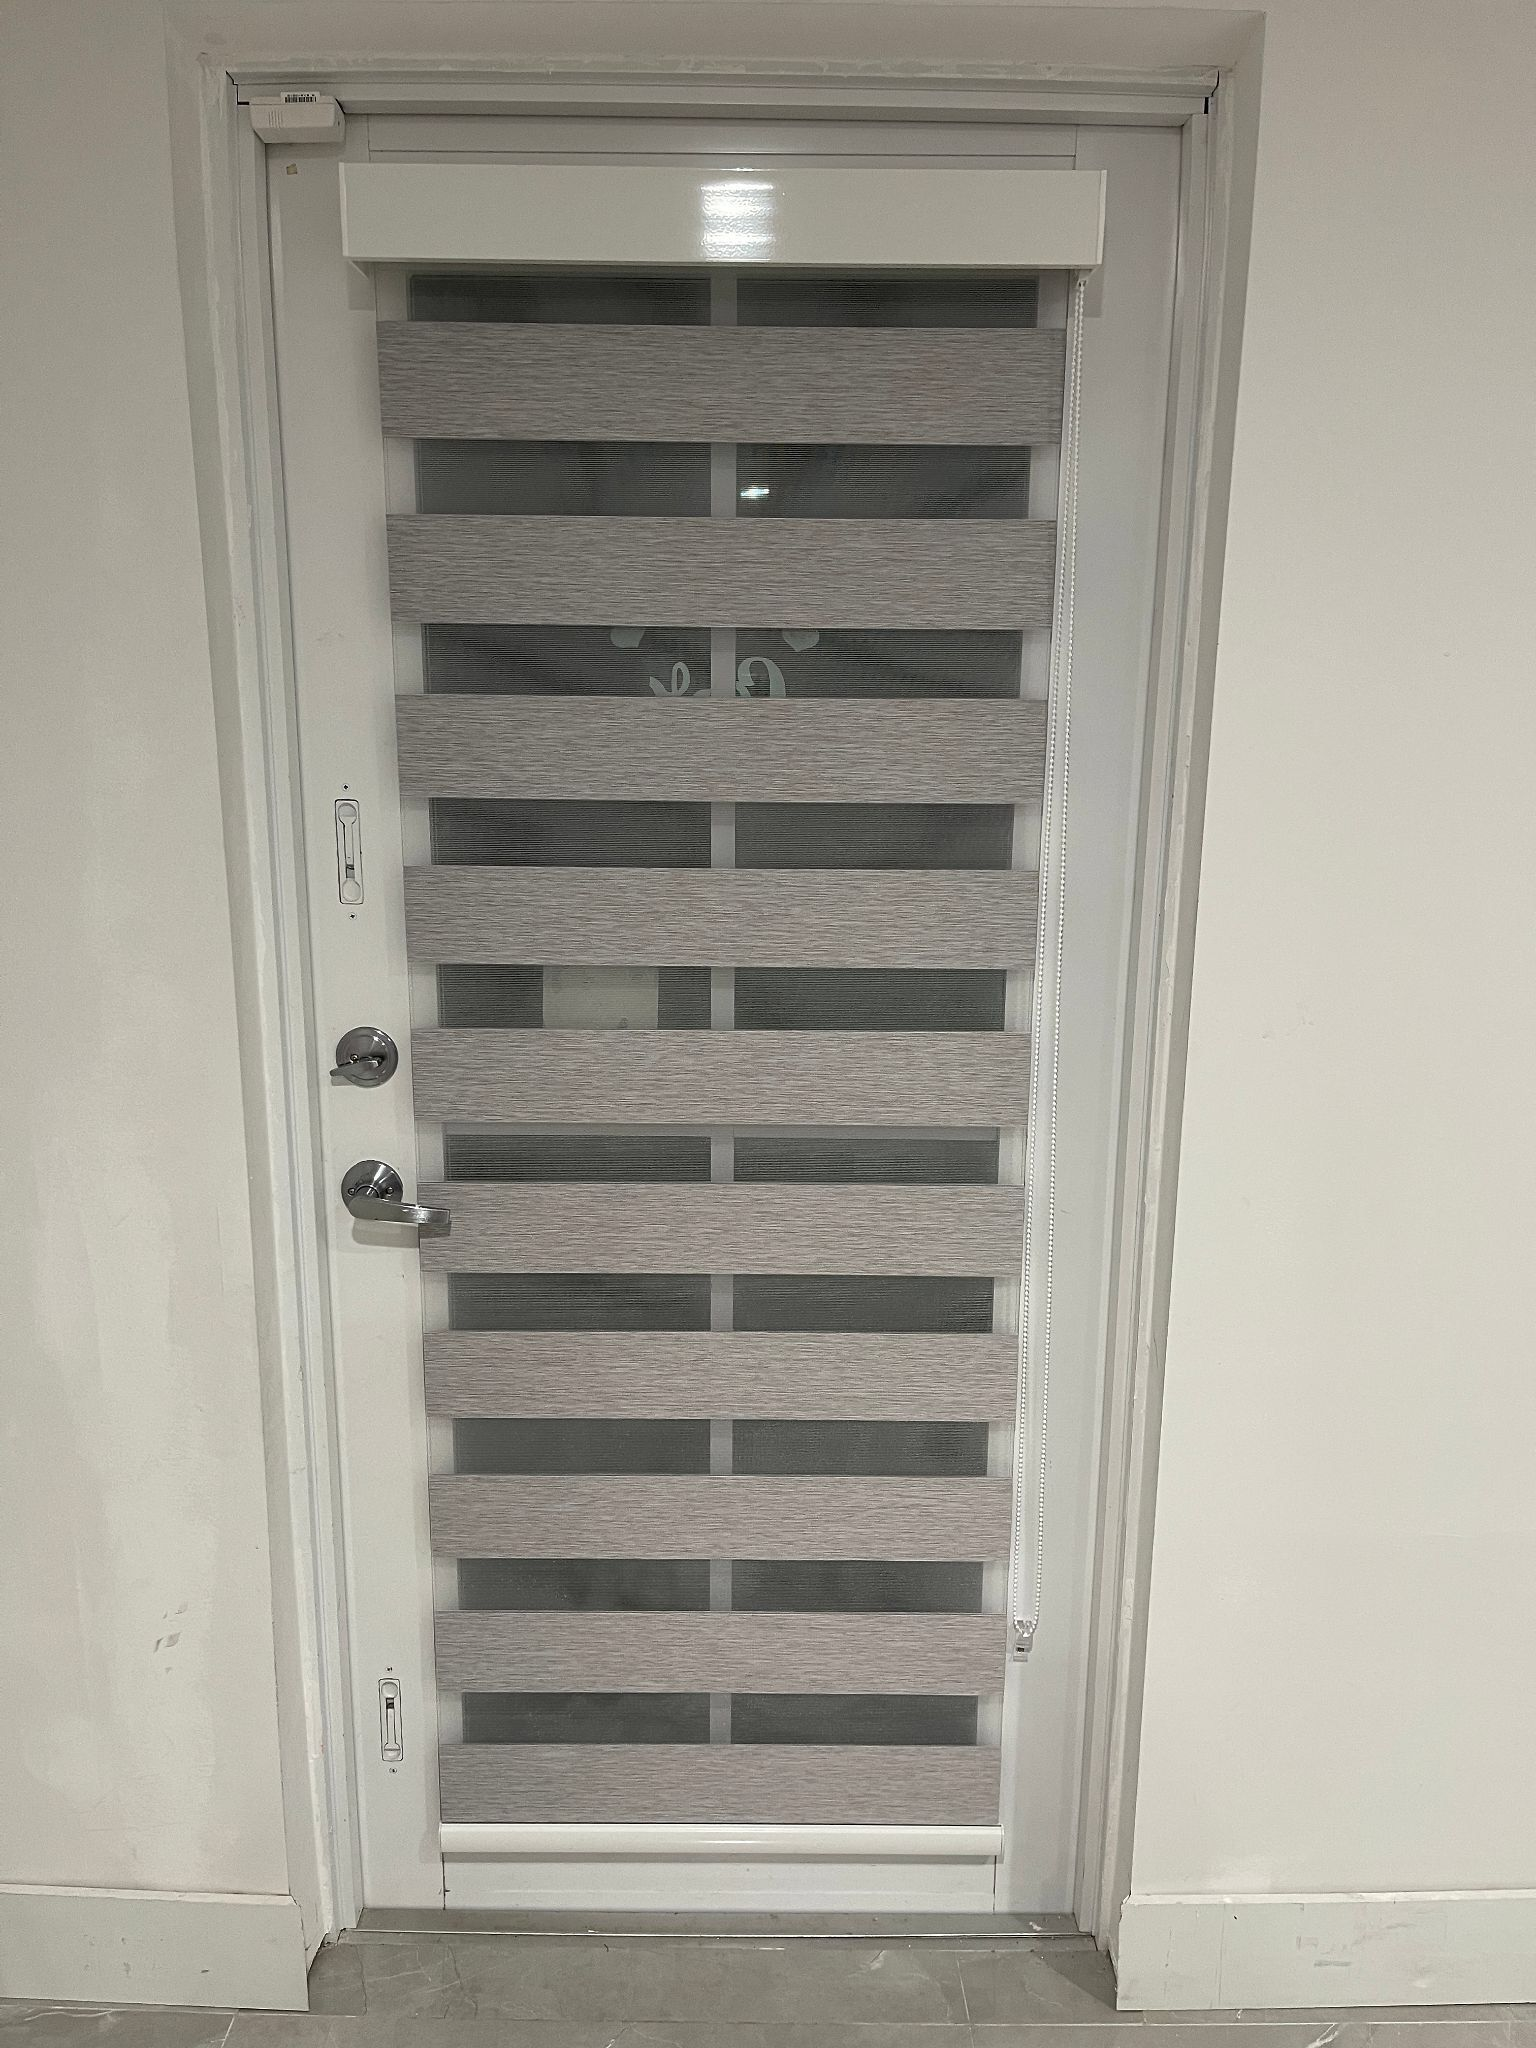 Zebra Shades Roller Shades Horizontal Blinds And More !!